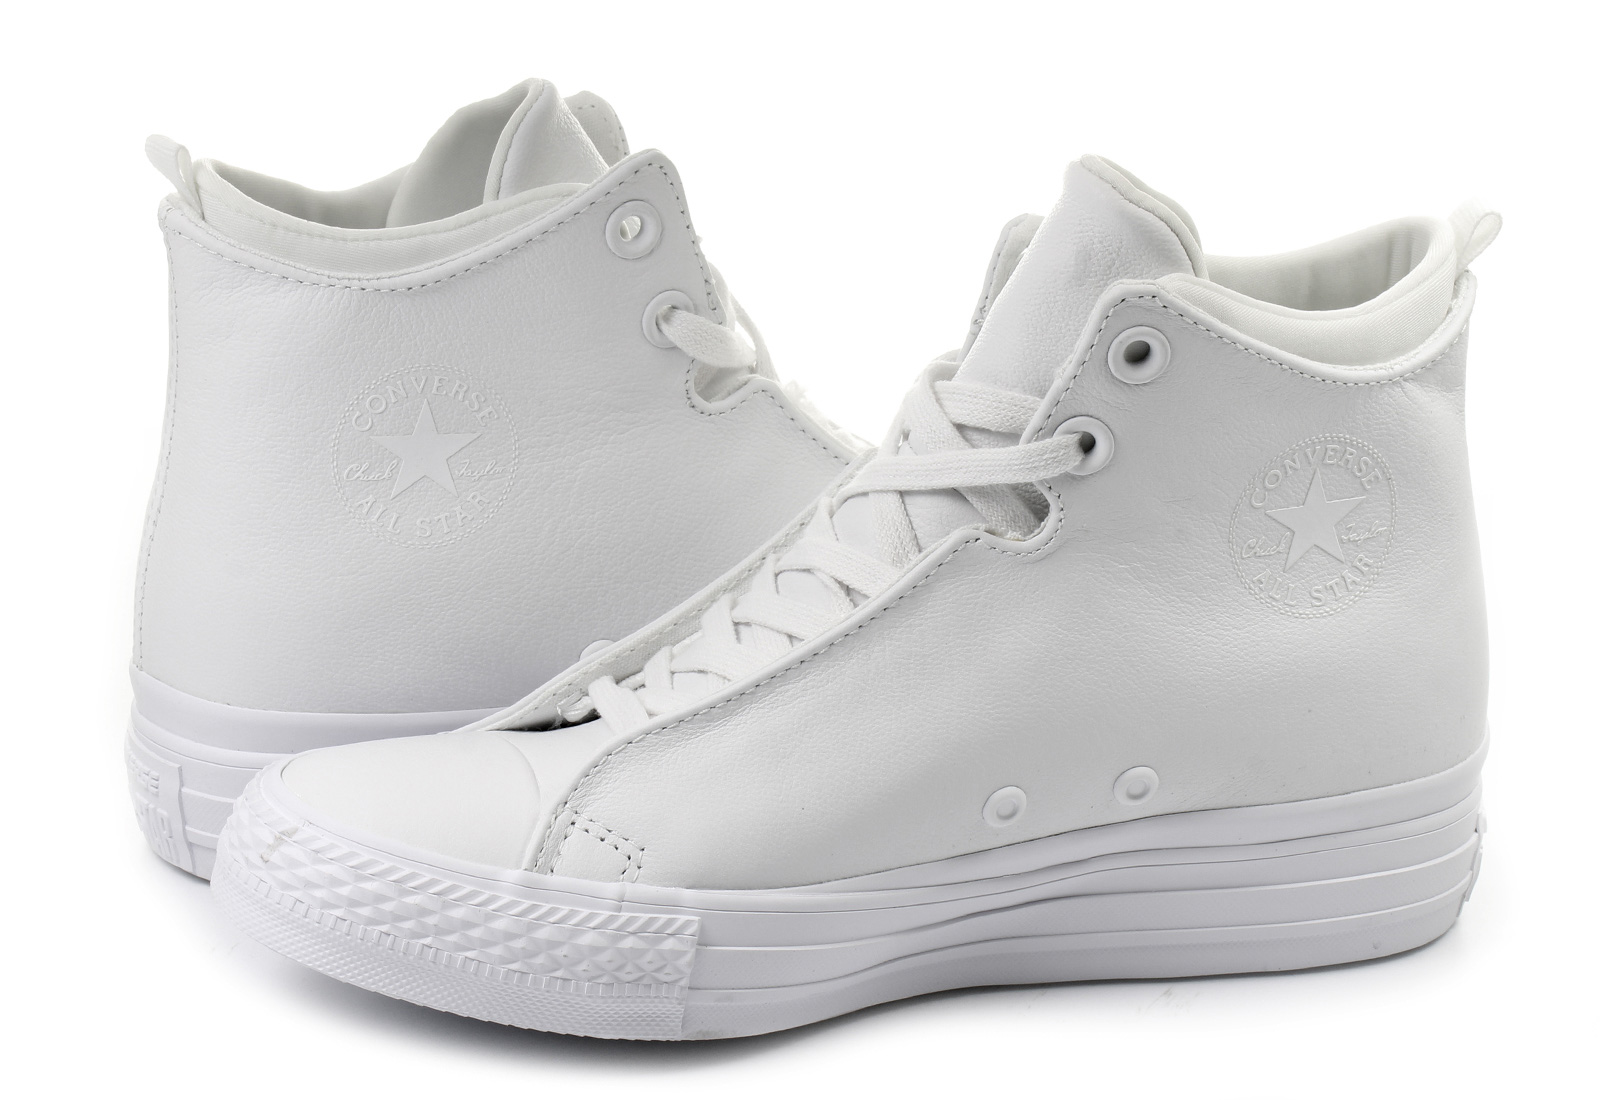 Converse Tornacipő - Chuck Taylor All Star Selene Mono Leather ... 0c0258beed